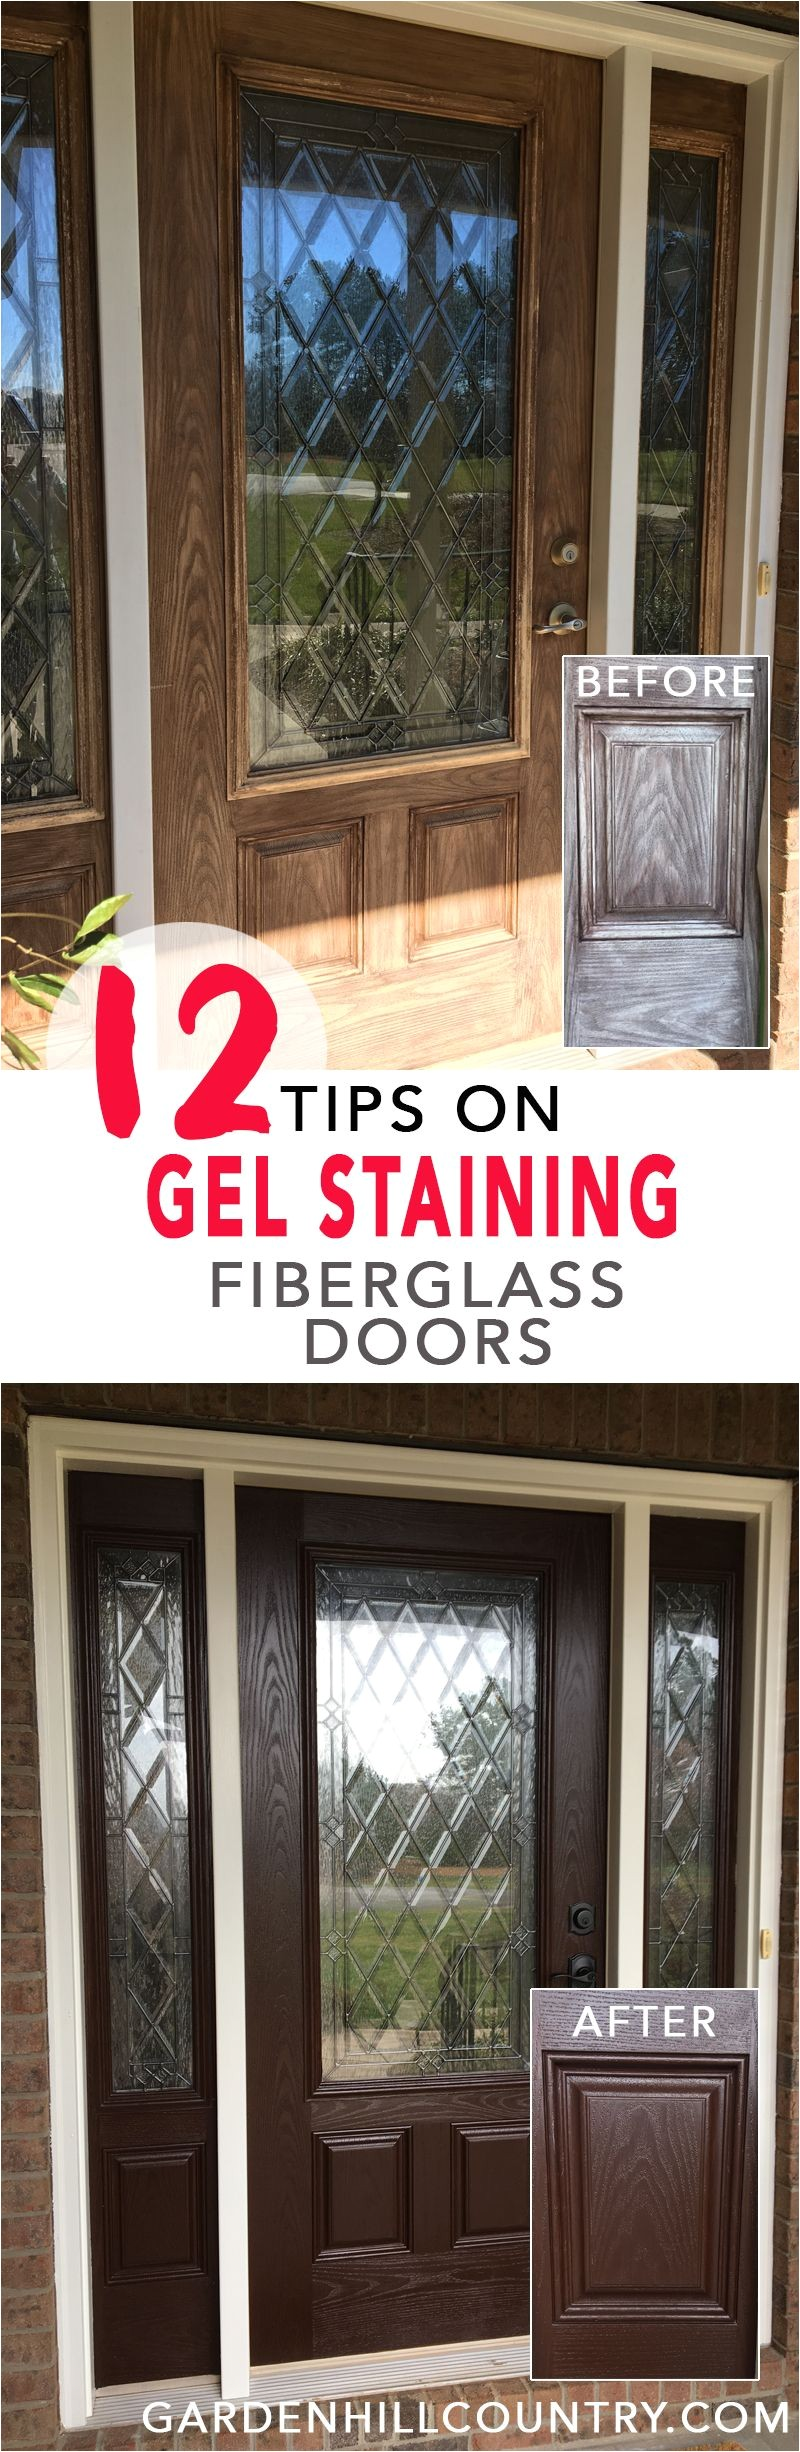 here are 12 tips for gel staining fiberglass doors including information on supplies surface preparation gel application dry time and more